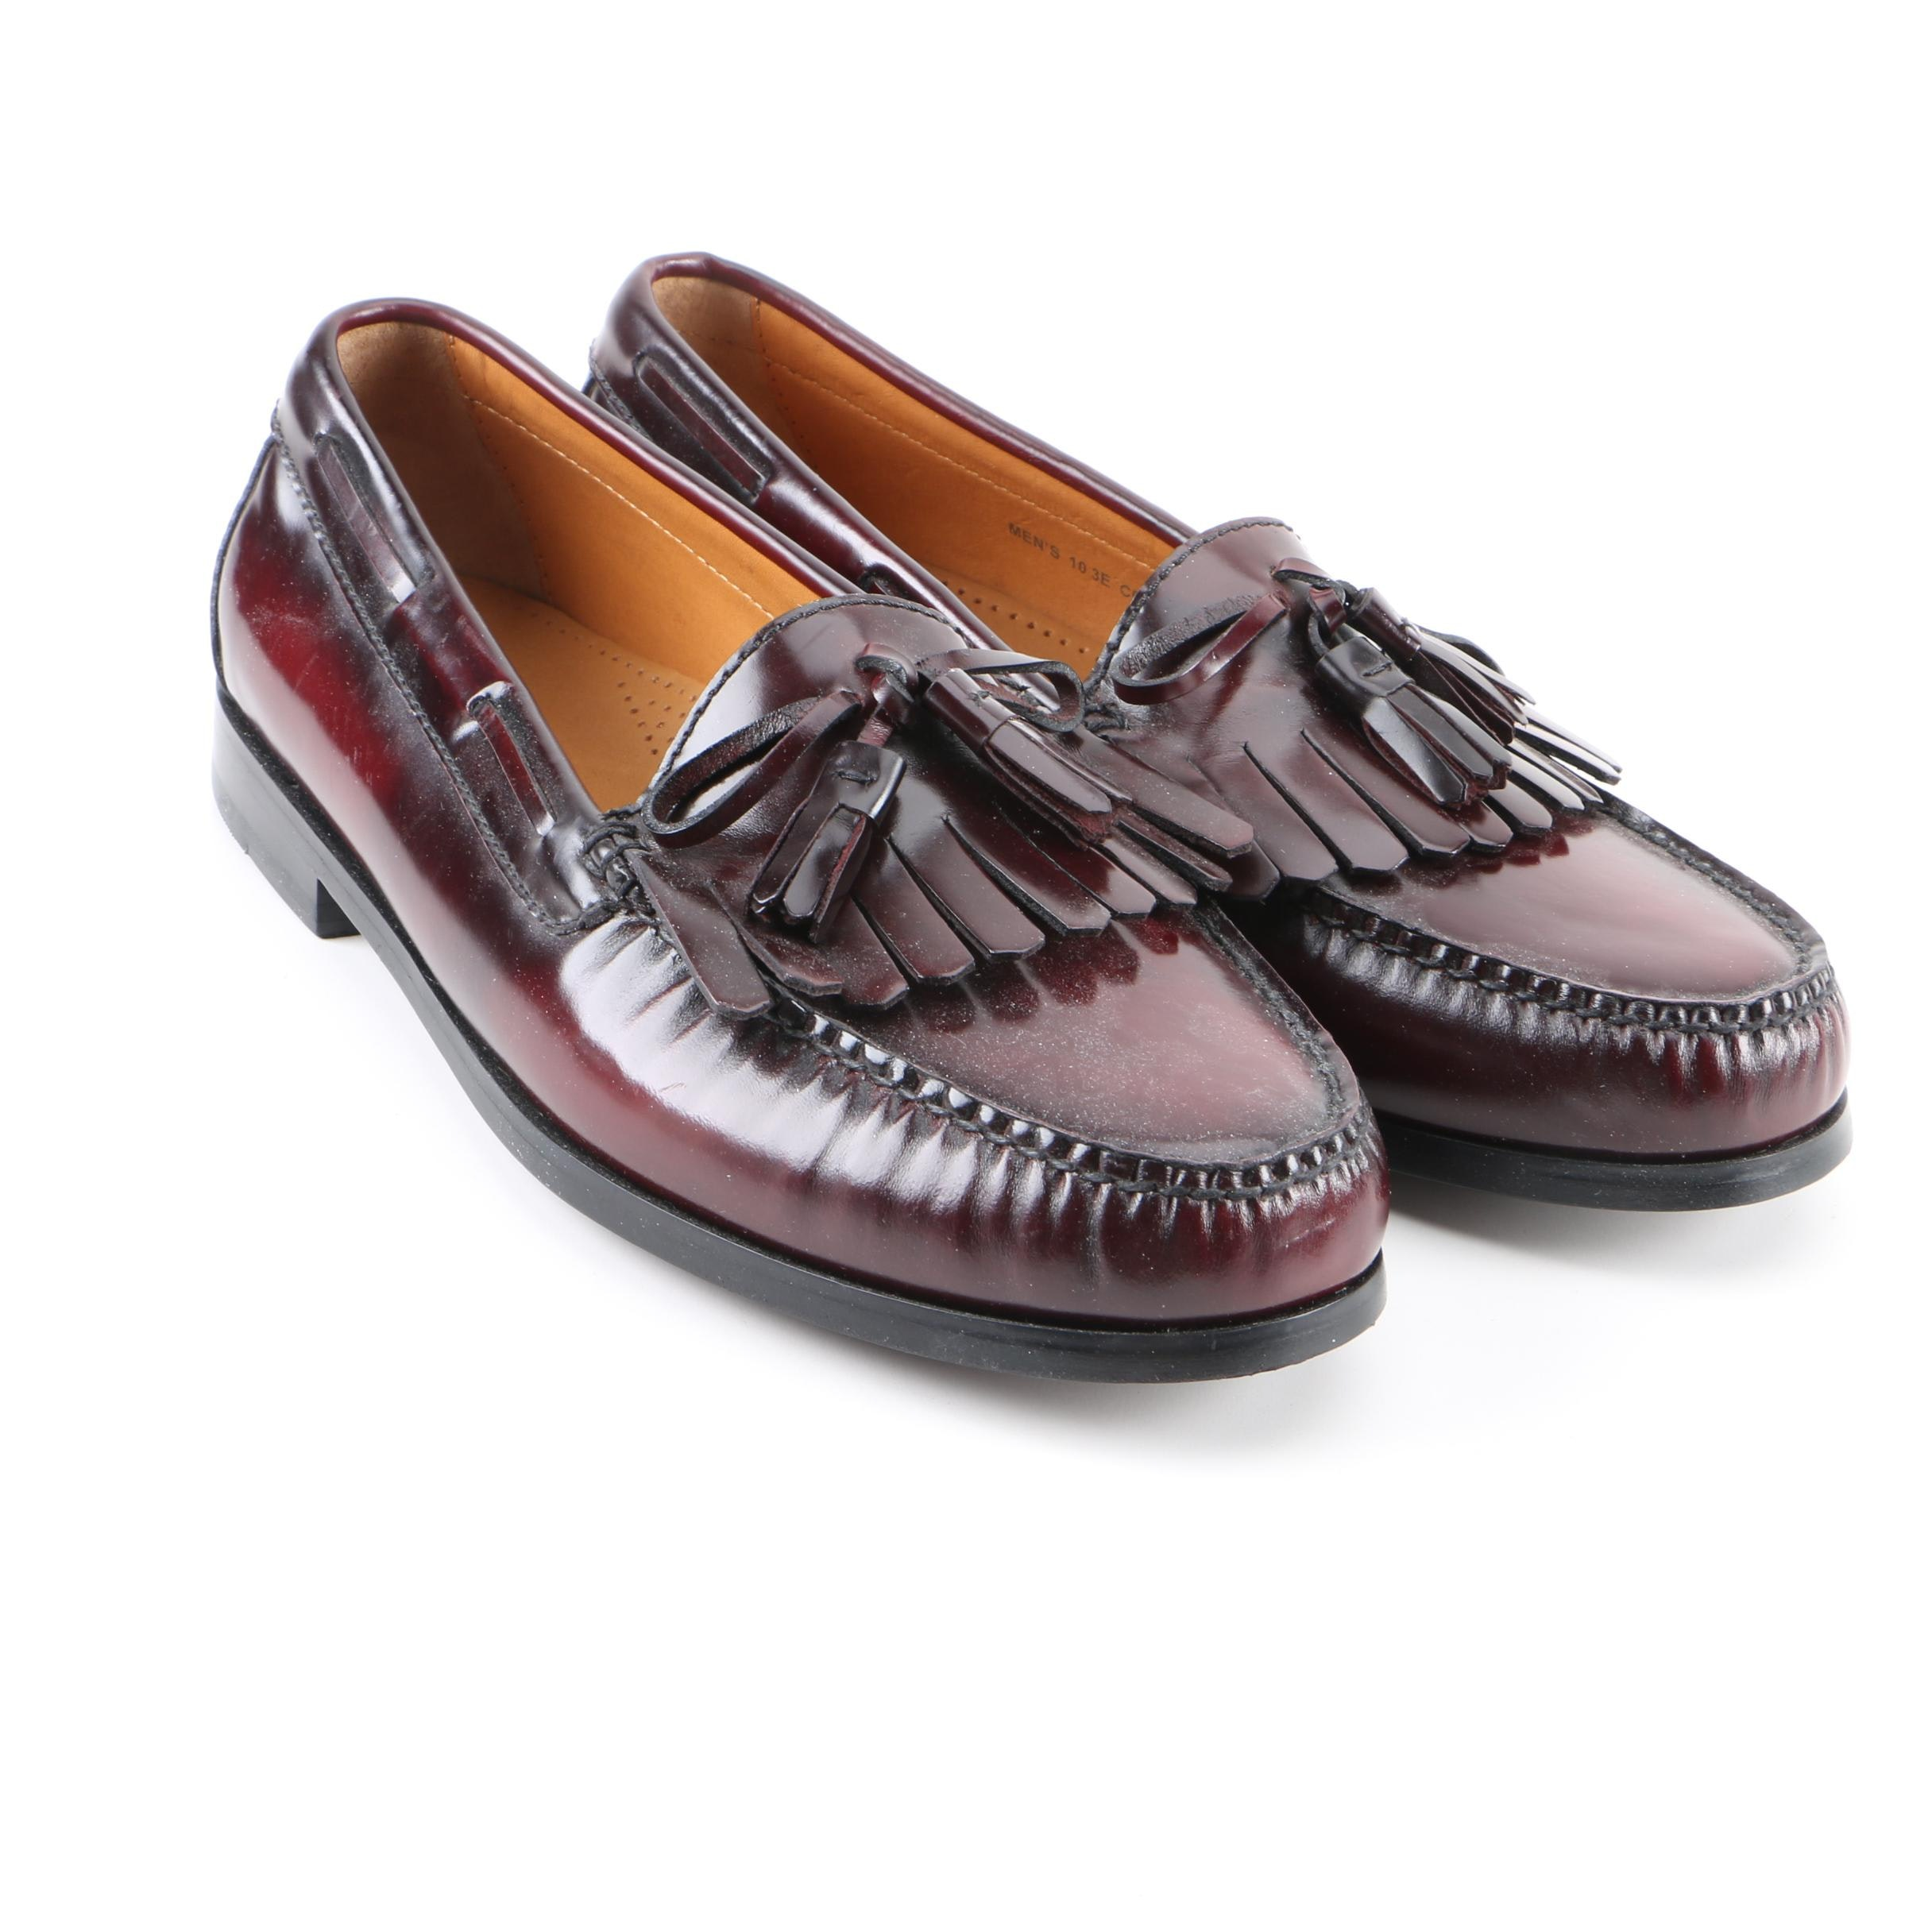 Men's Cole Haan Brown Leather Tassel Loafers